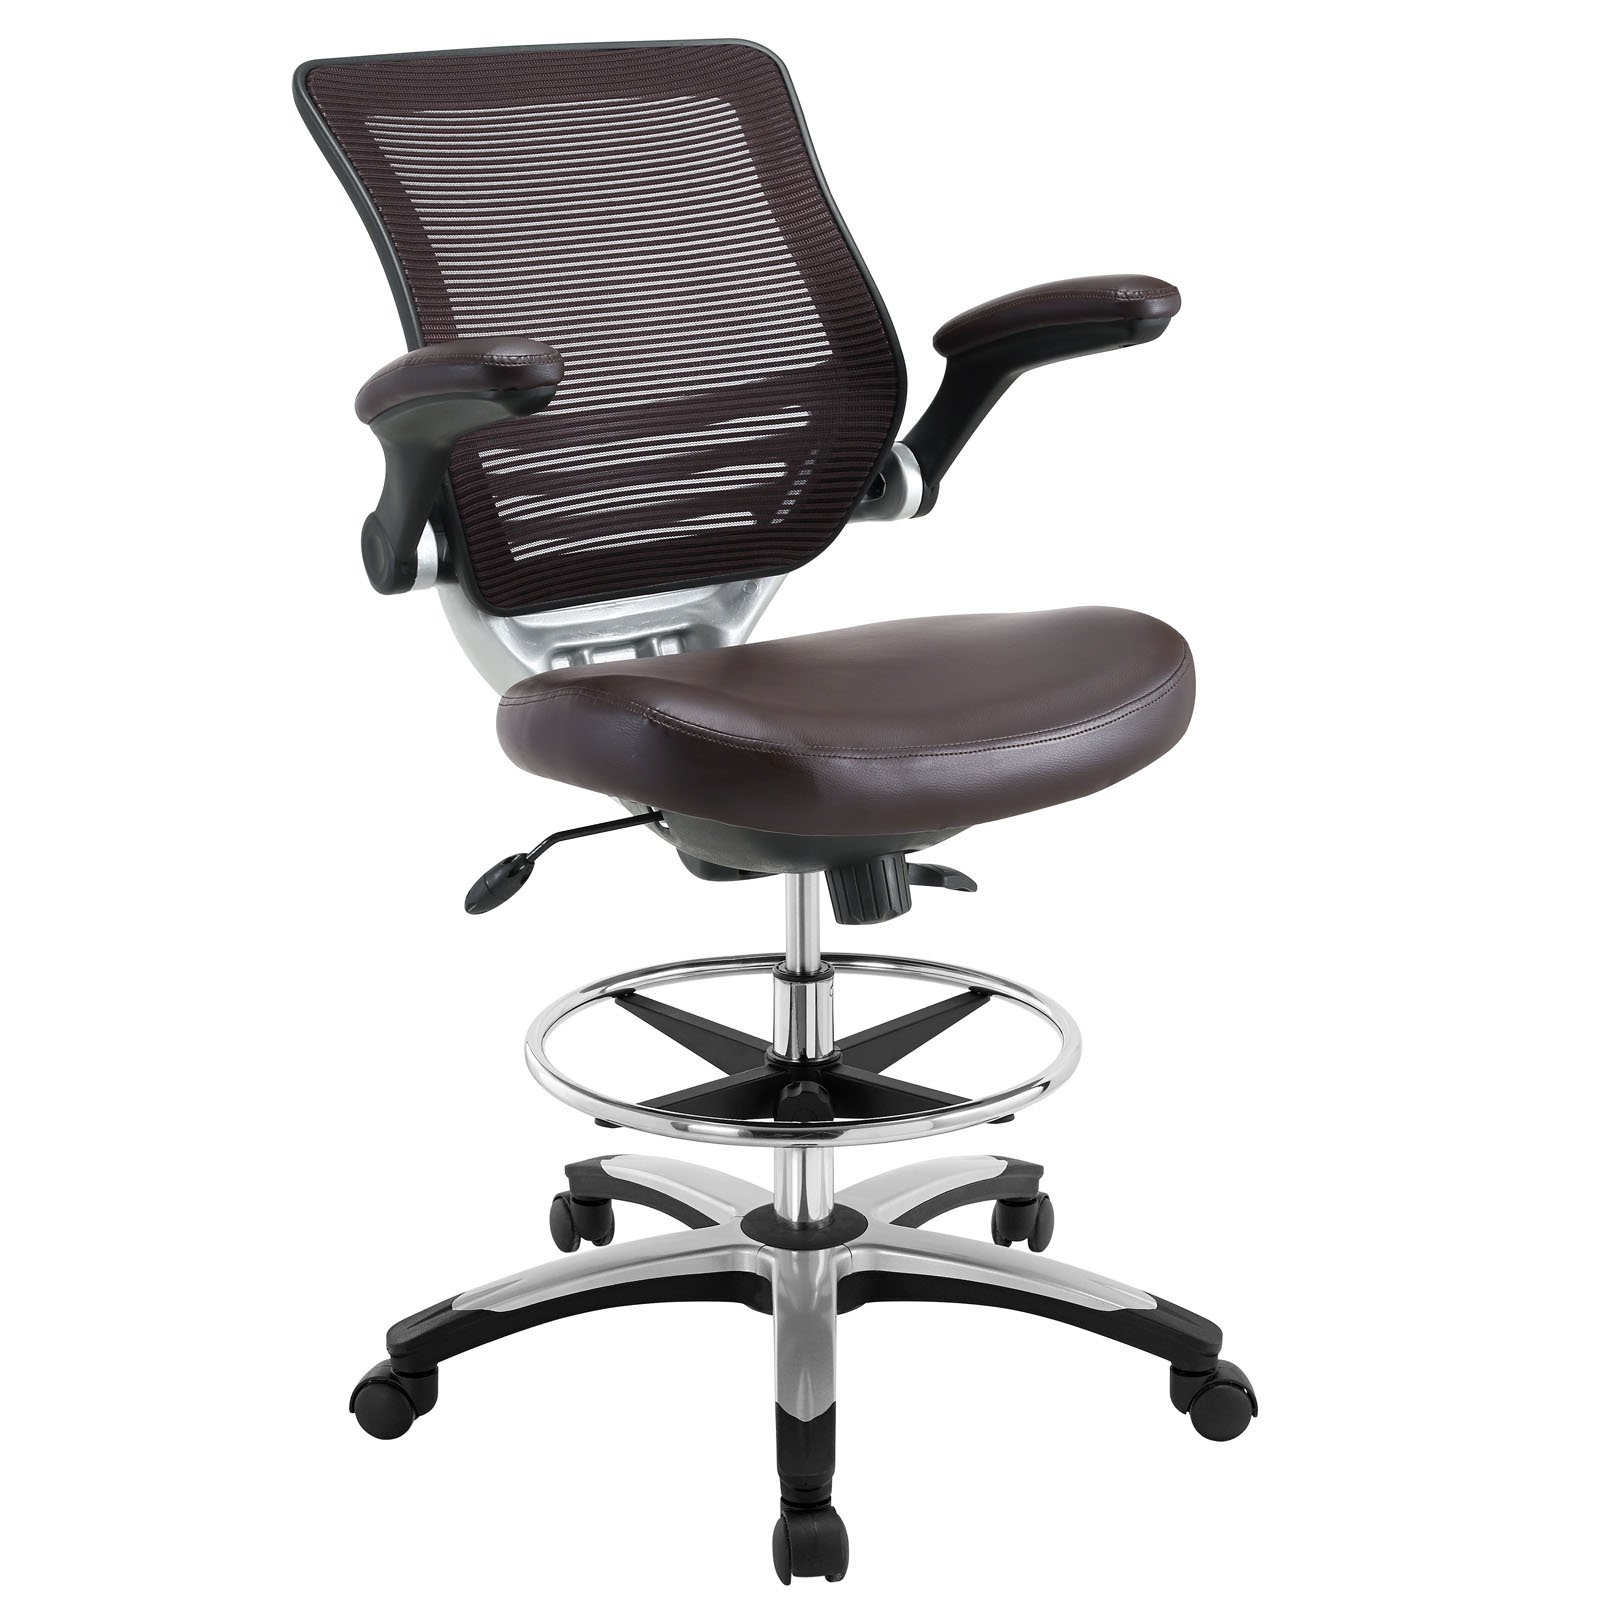 Modway Edge Drafting Chair In Brown Vinyl - Reception Desk Chair - Tall Office Chair For Adjustable Standing Desks - Flip-Up Arm Drafting Table Chair